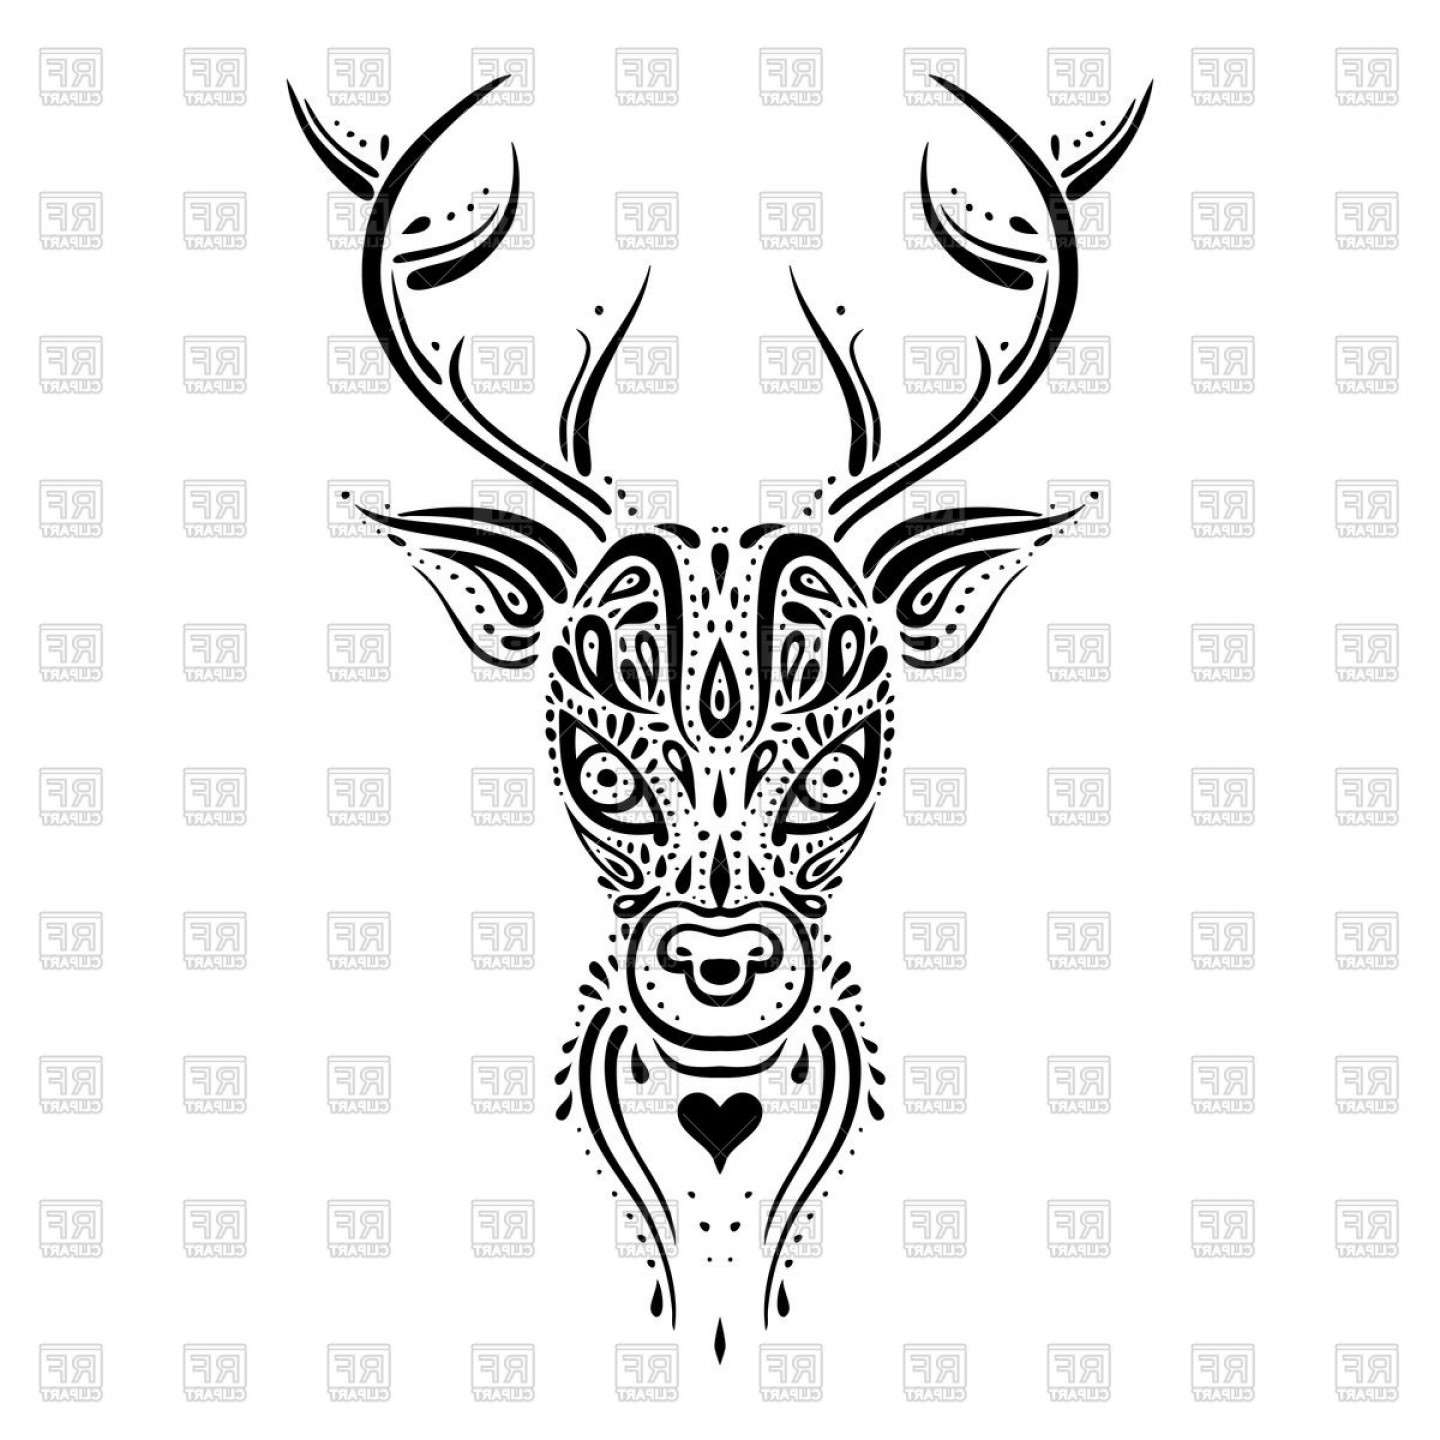 Deer Head Silhouette Vector Clip Art: Deer Head Ethnic Tribal Ornament Tattoo Tracery Vector Clipart